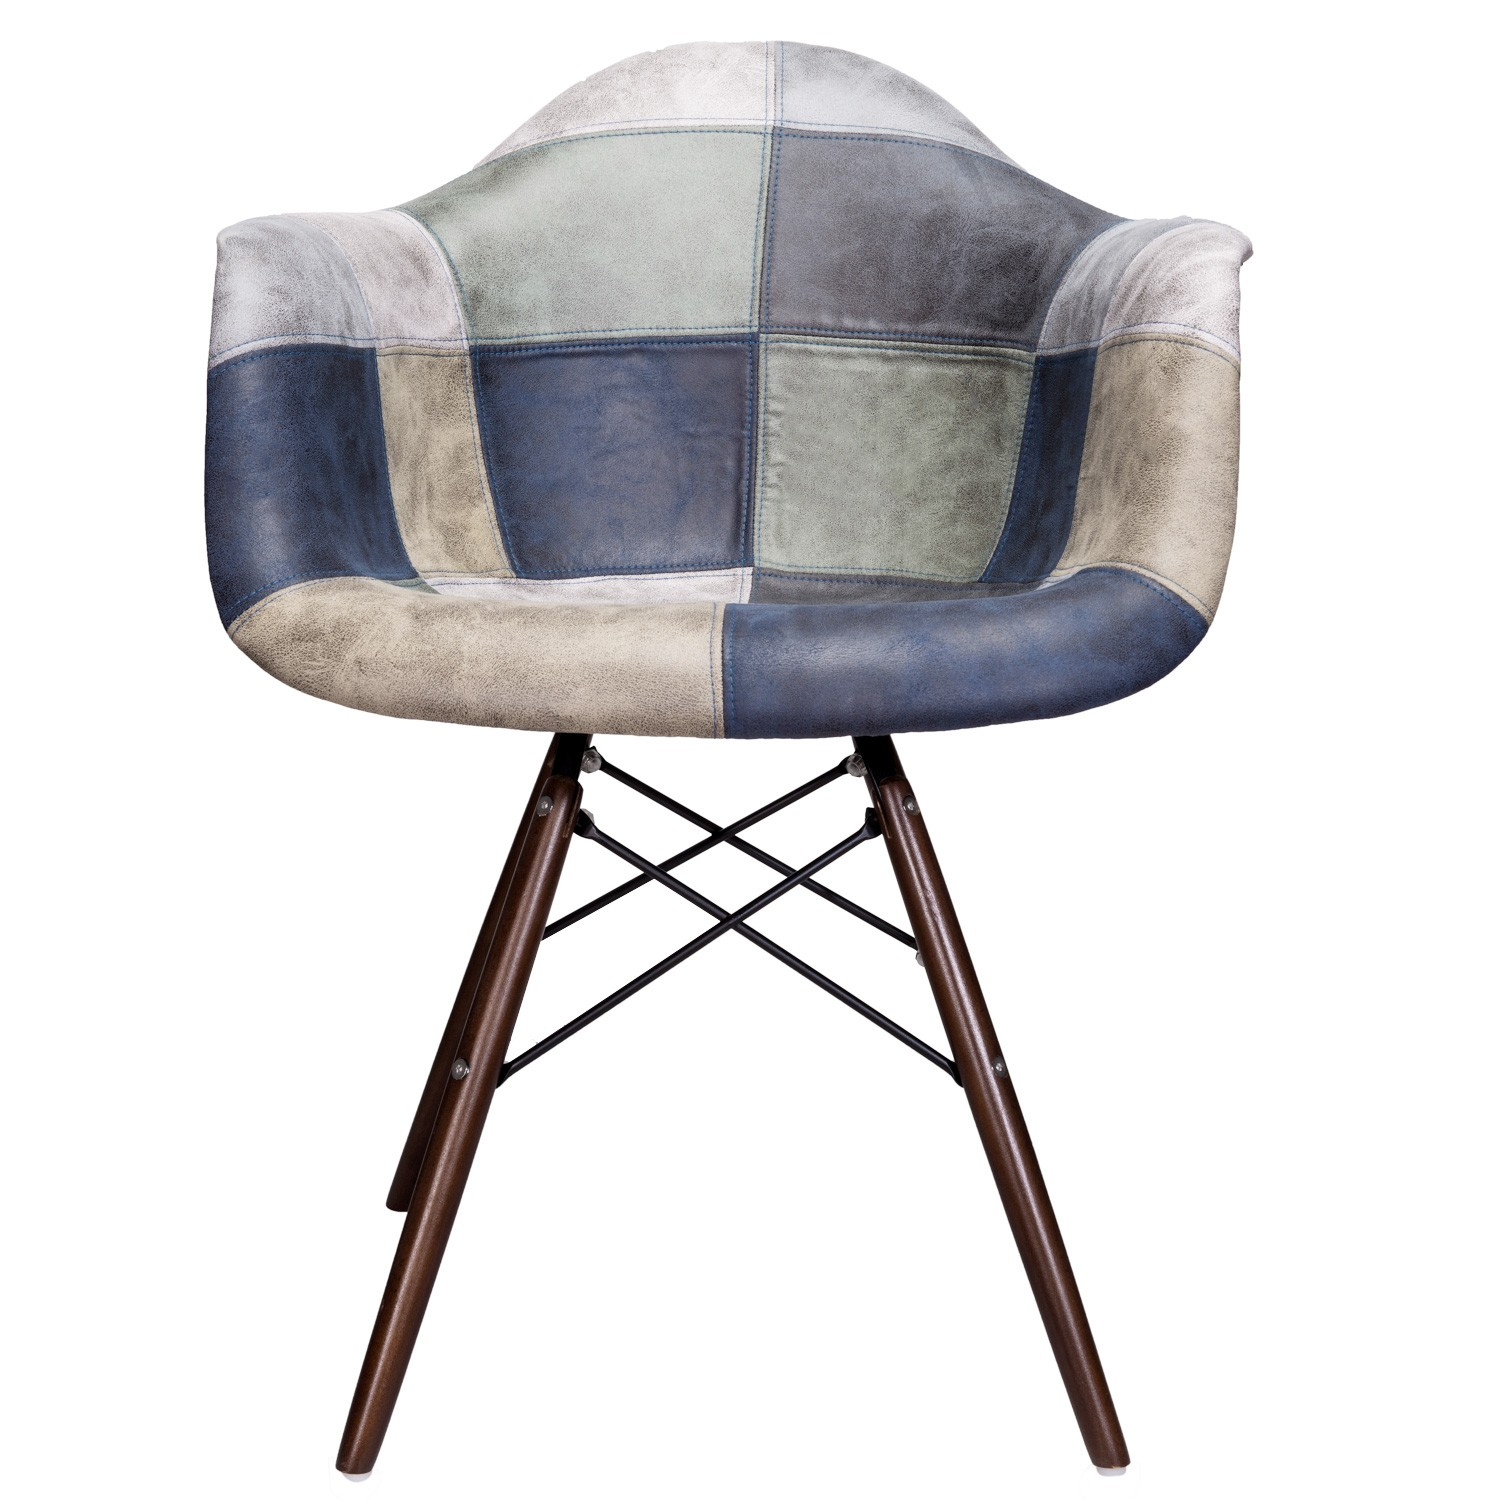 tub fabric accent chair patchwork ergonomic reasonable accommodation mooku blue and gray leatherette upholstered